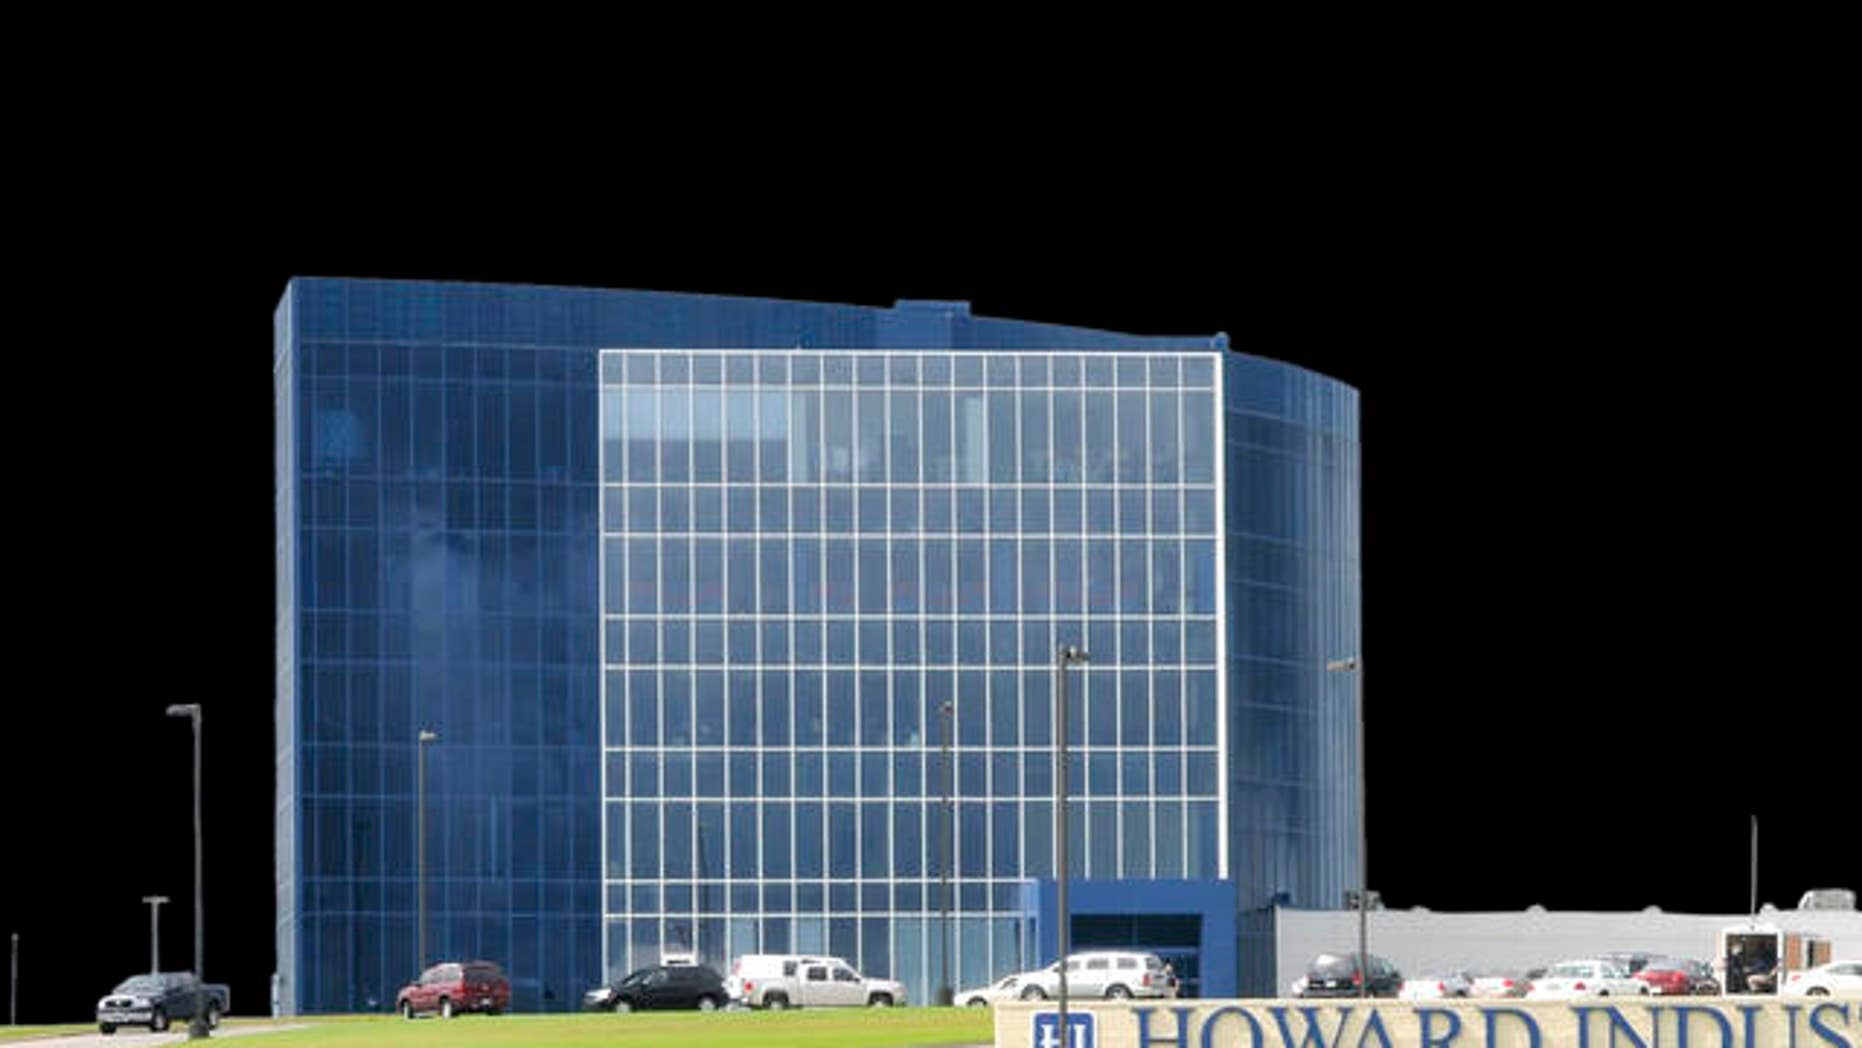 Federal immigration agents raided Howard Industries headquarters, seen here in the Ellisville Industrial Park in Laurel, Miss., as members of the Homeland Security ICE team investigate if the company was using undocumented workers Monday, Aug. 25, 2008. Howard Industries produces dozens of products, ranging from electrical transformers to medical supplies, according to the company's Web site. (AP Photo/George Clark)